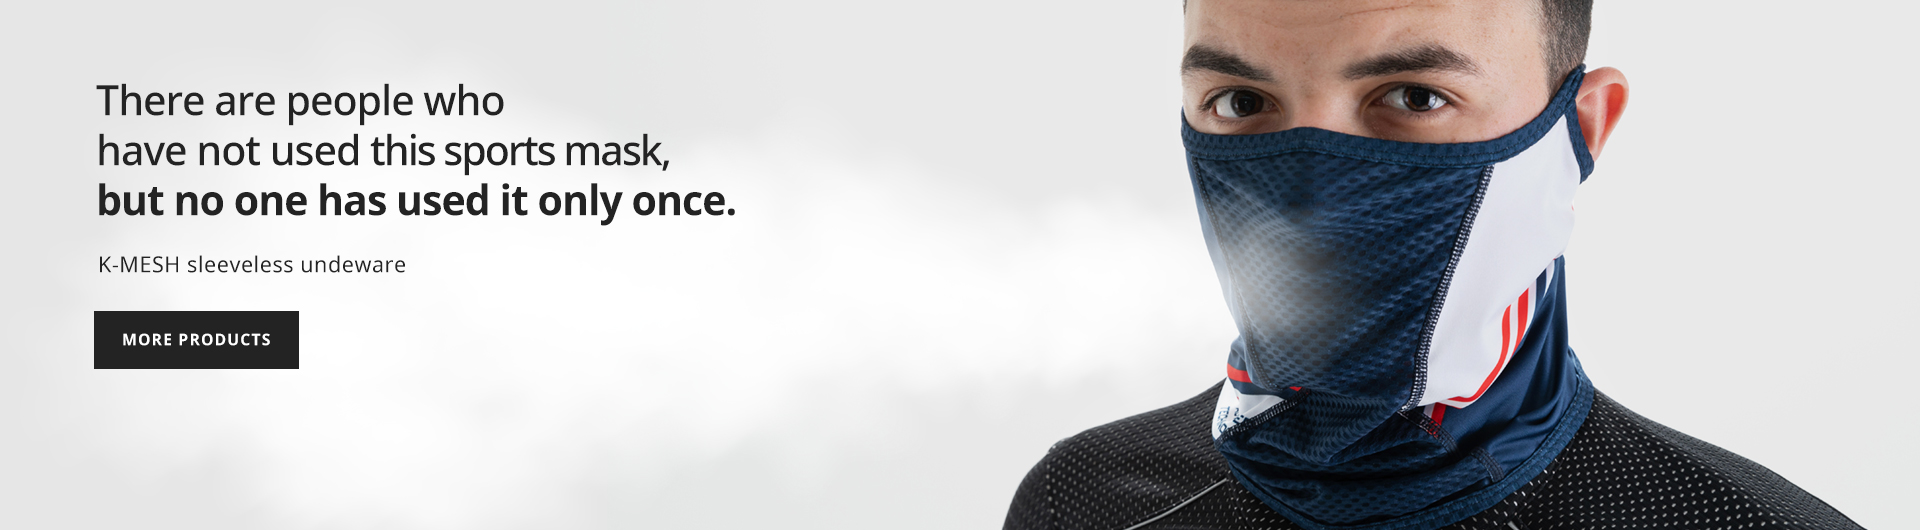 There are people who have not used this sports mask, but no one has used it only once.